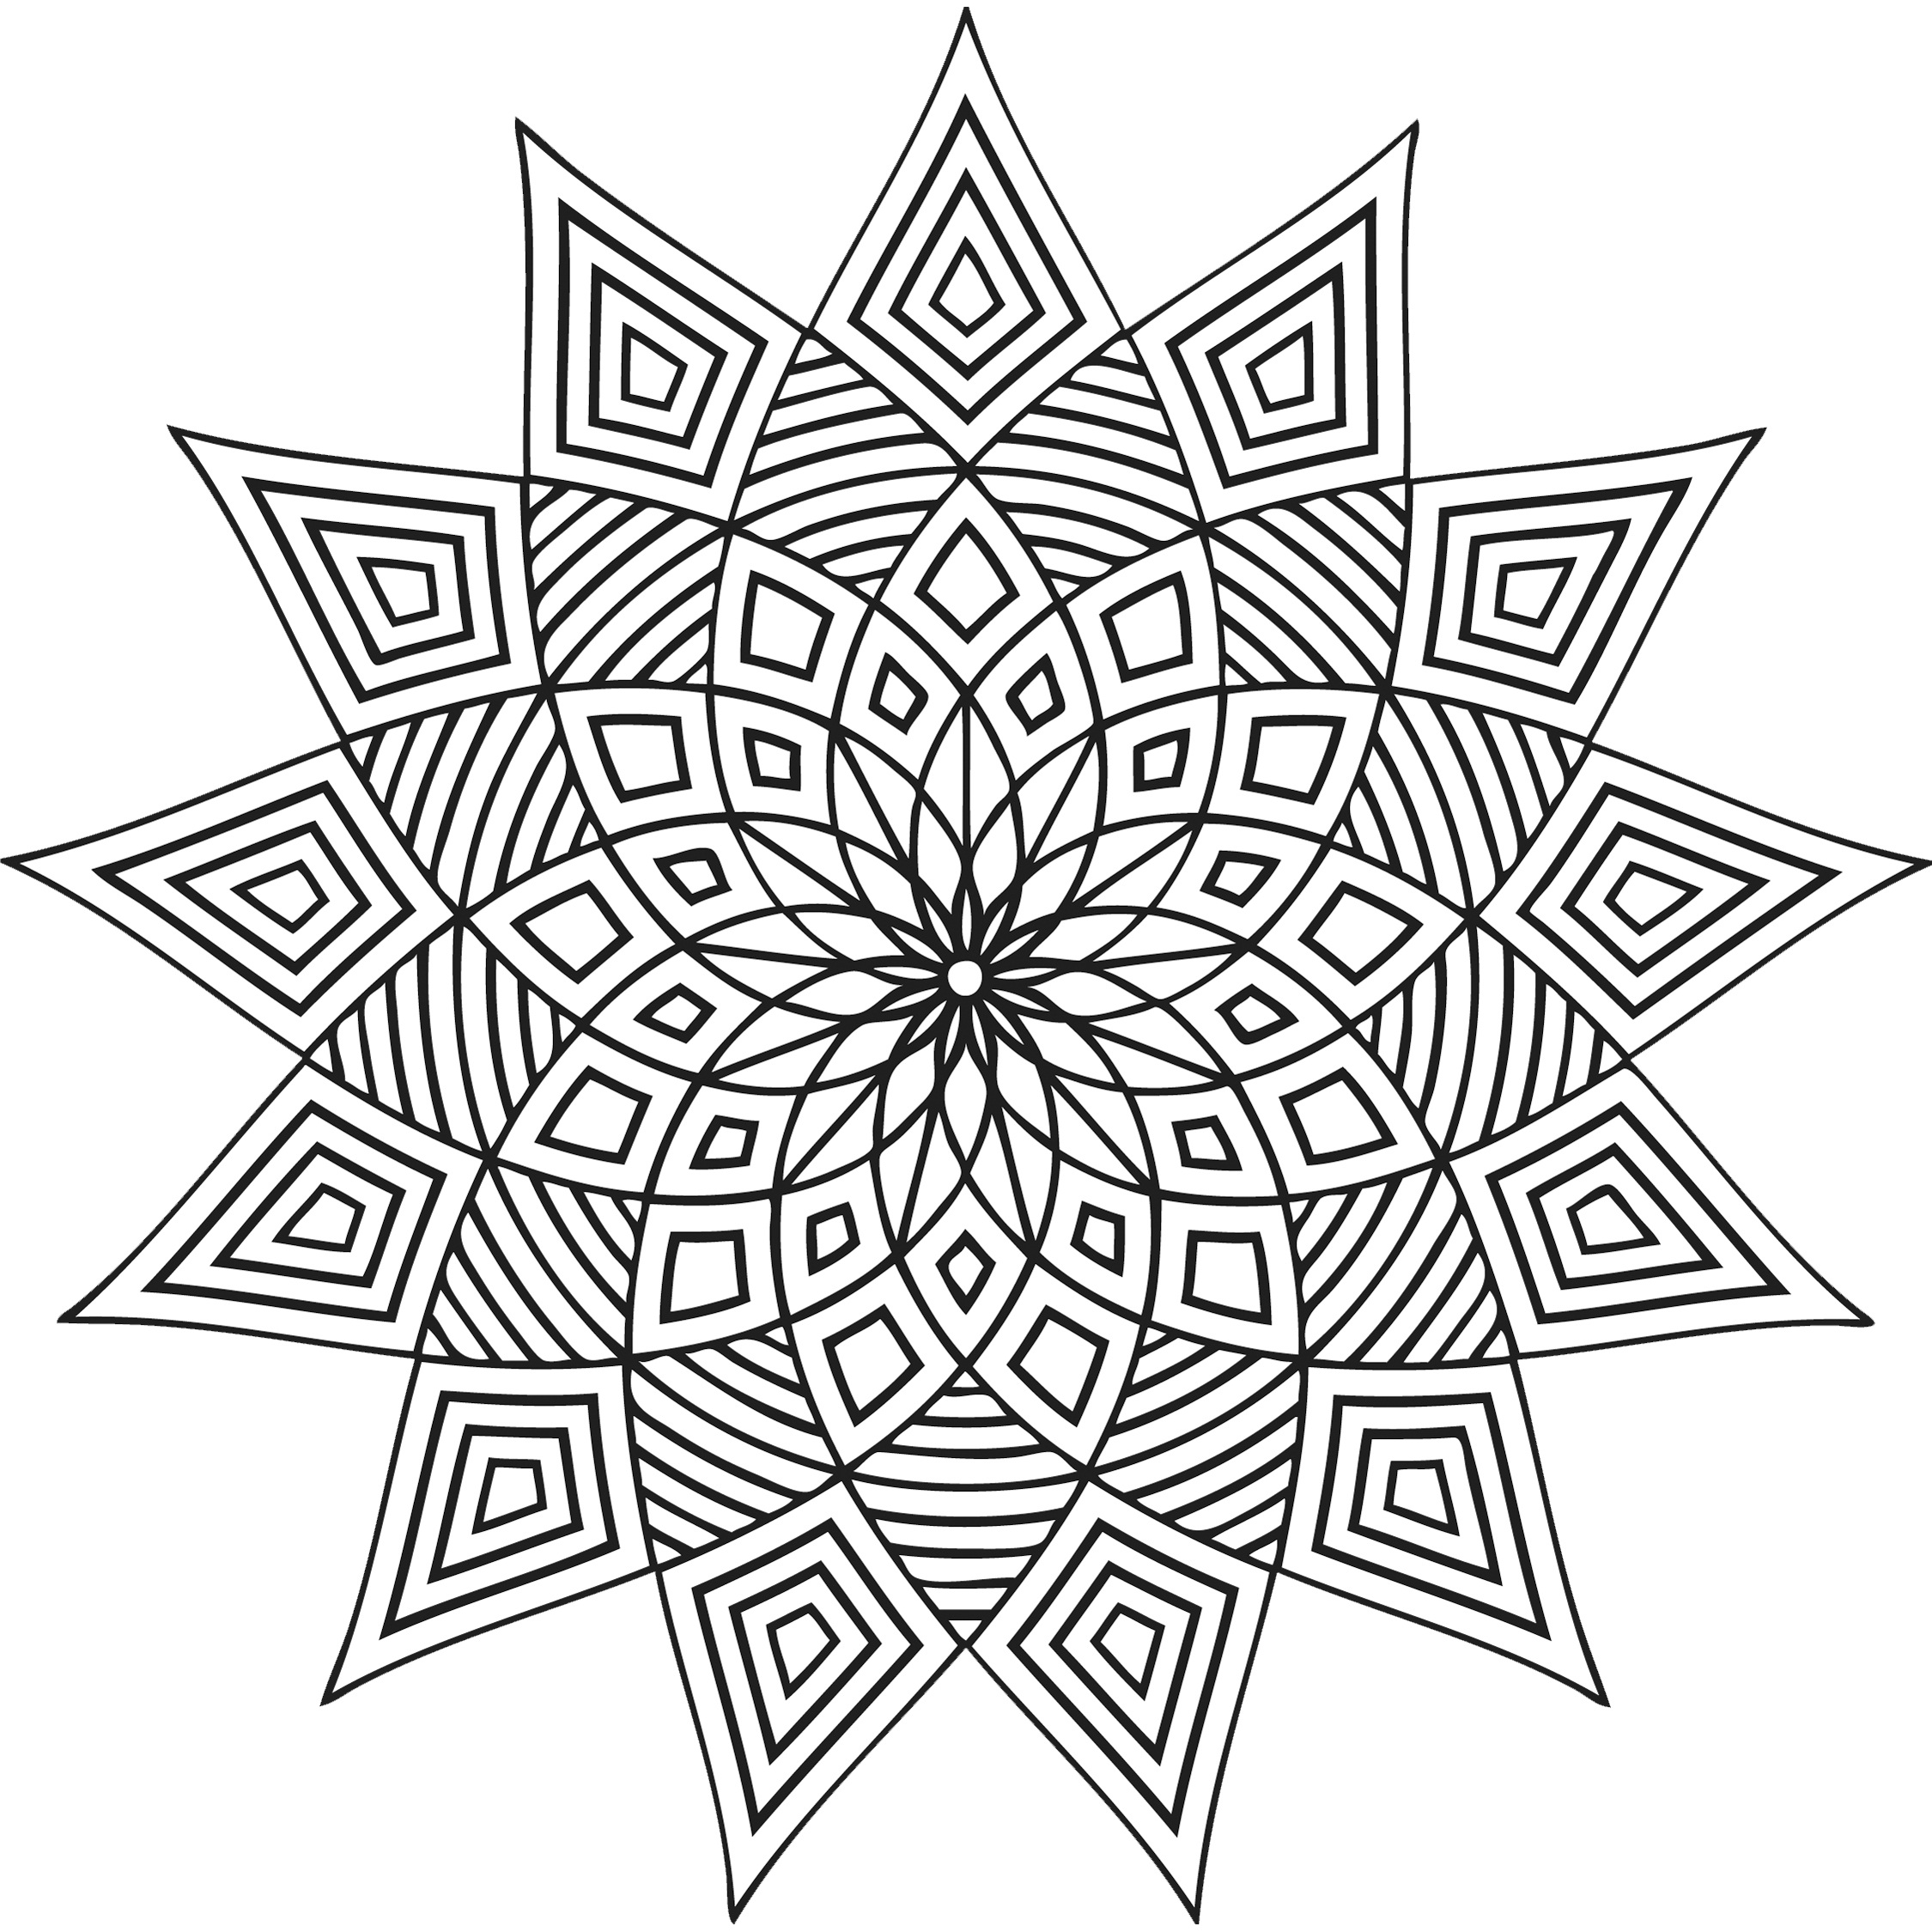 geometric coloring pages for adults free geometric coloring pages for adults coloring home adults geometric for coloring free pages